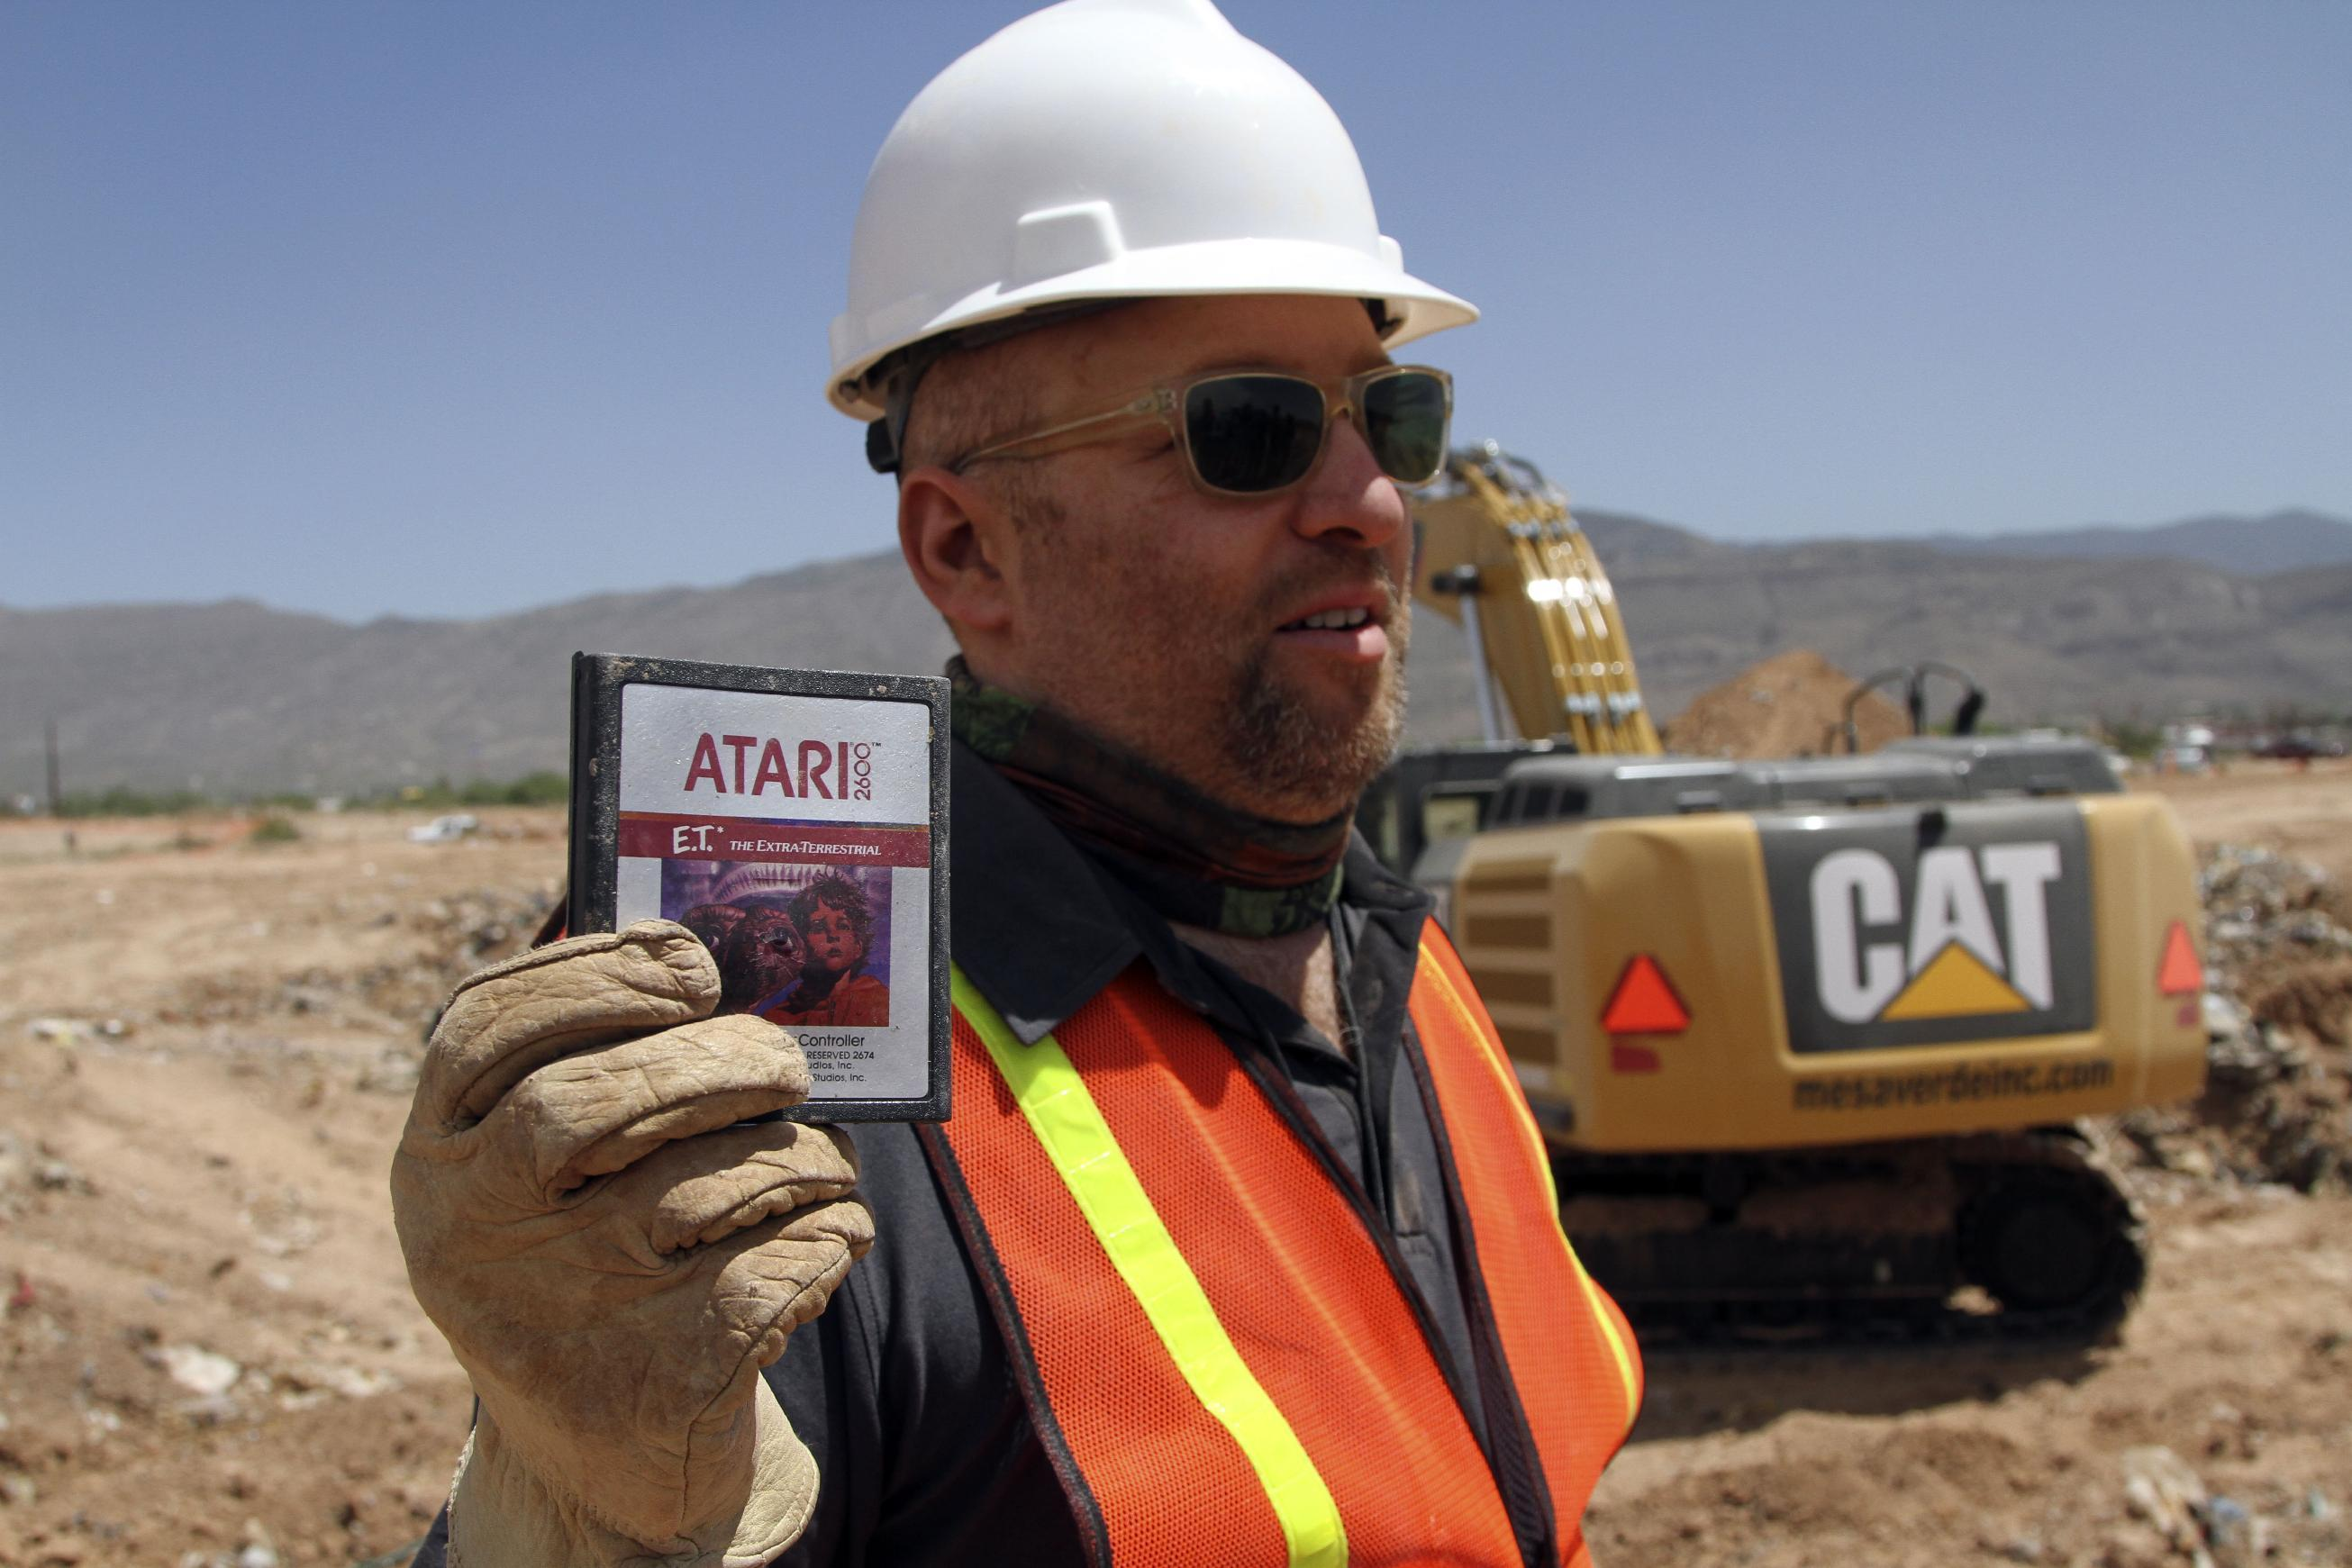 Sales of unearthed Atari games total more than $100,000